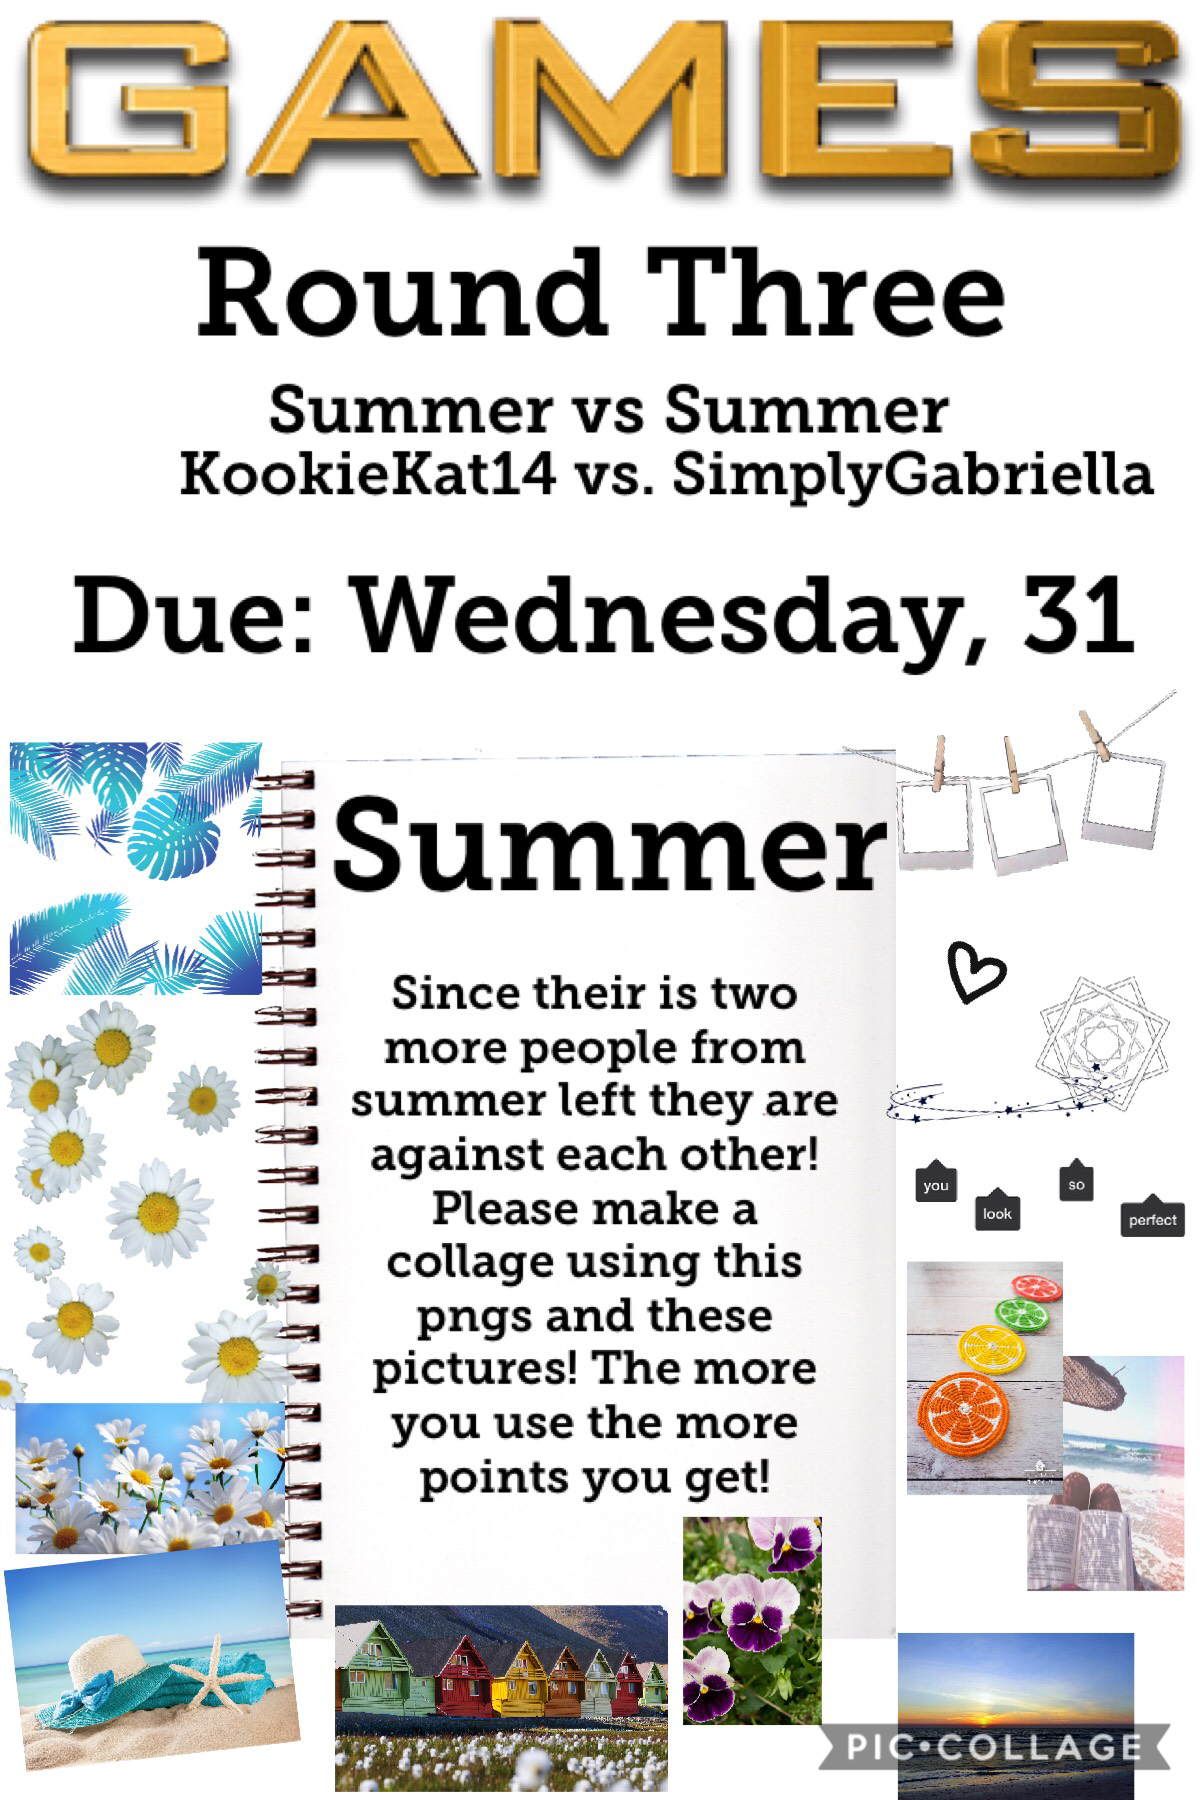 ⚠️⚠️⚠️ Only enter if you are team Summer!! ⚠️⚠️⚠️